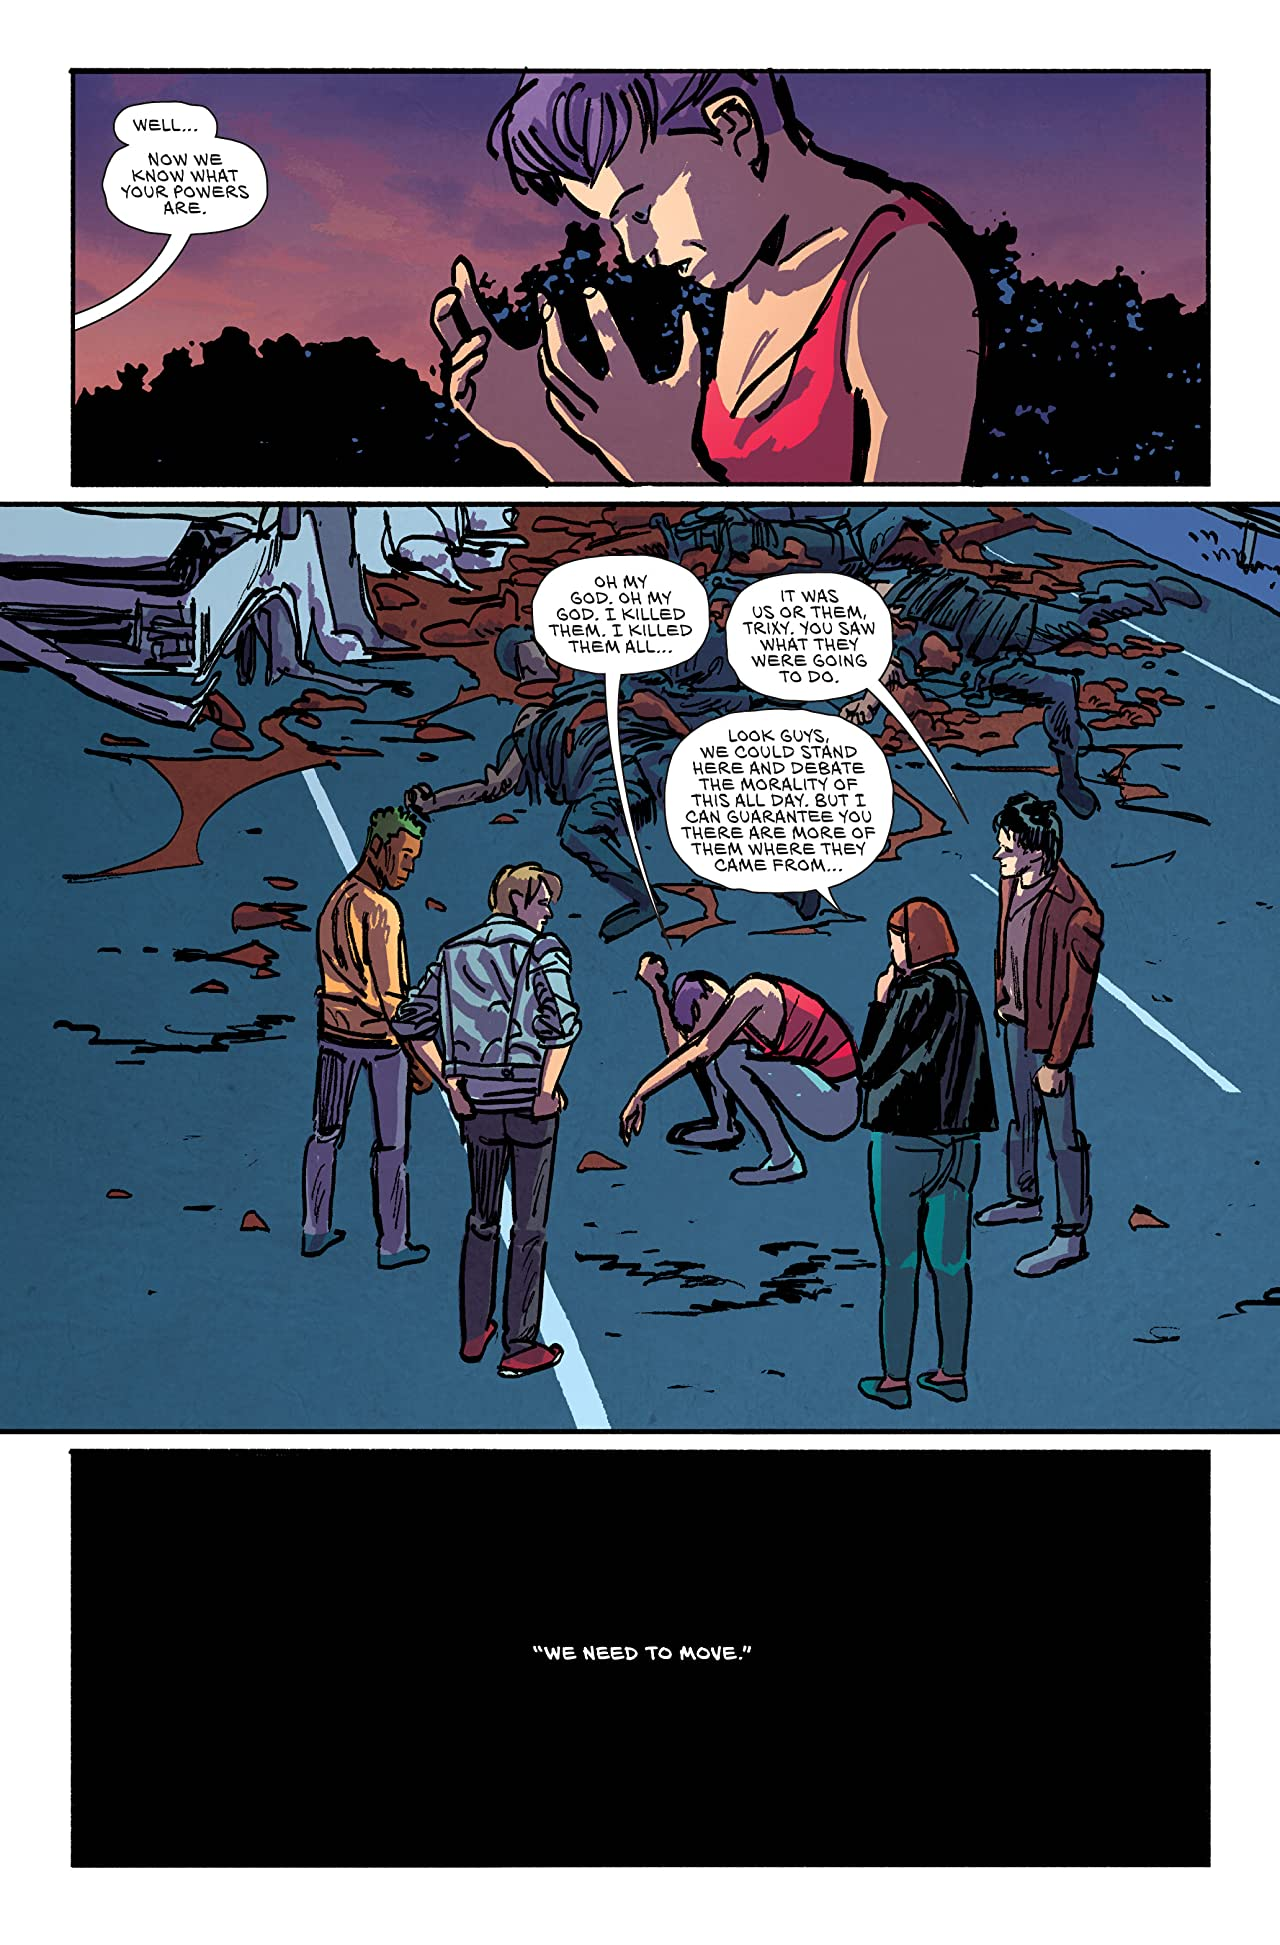 Youth (comiXology Originals) #3 (of 4)